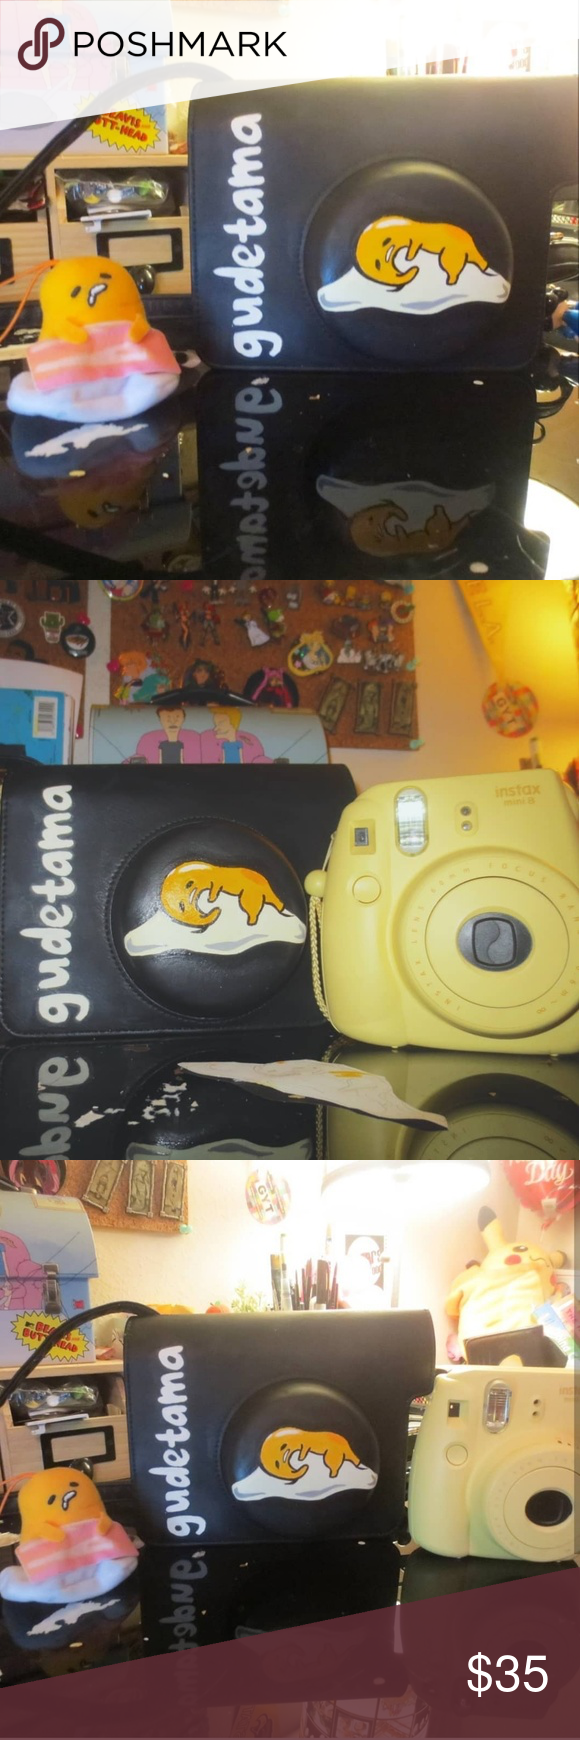 Hand painted gudetama instax camera purse thing Painted Gudetama on a instax camera purse thing